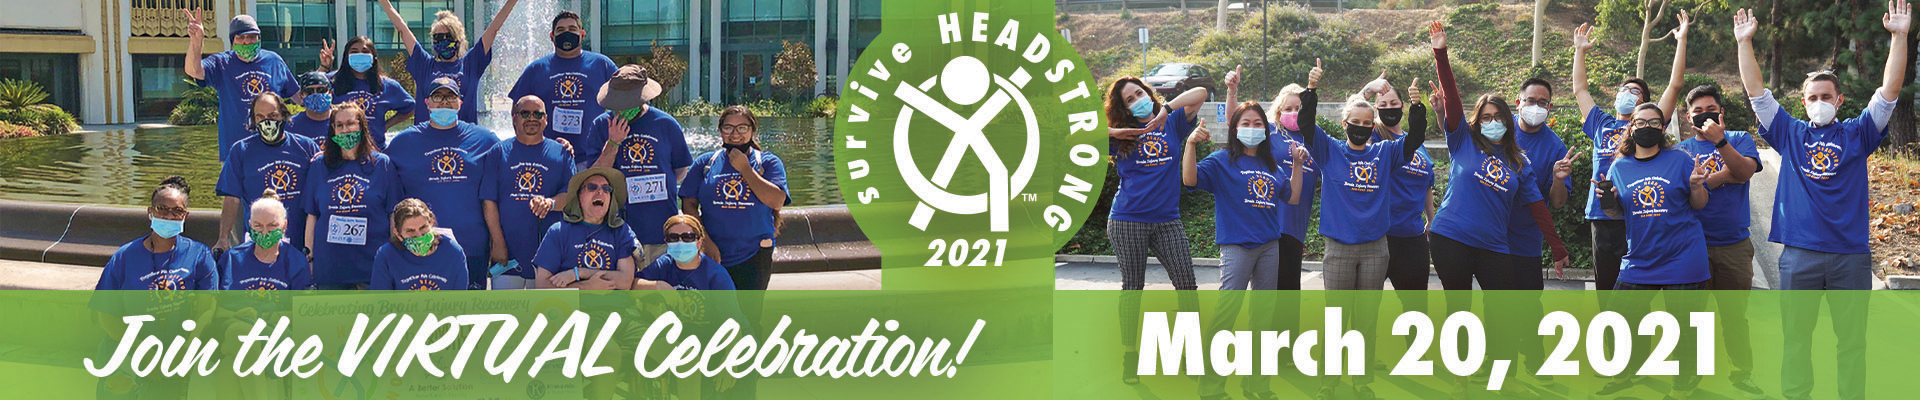 2021 surviveHEADSTRONG Get Involved Banner